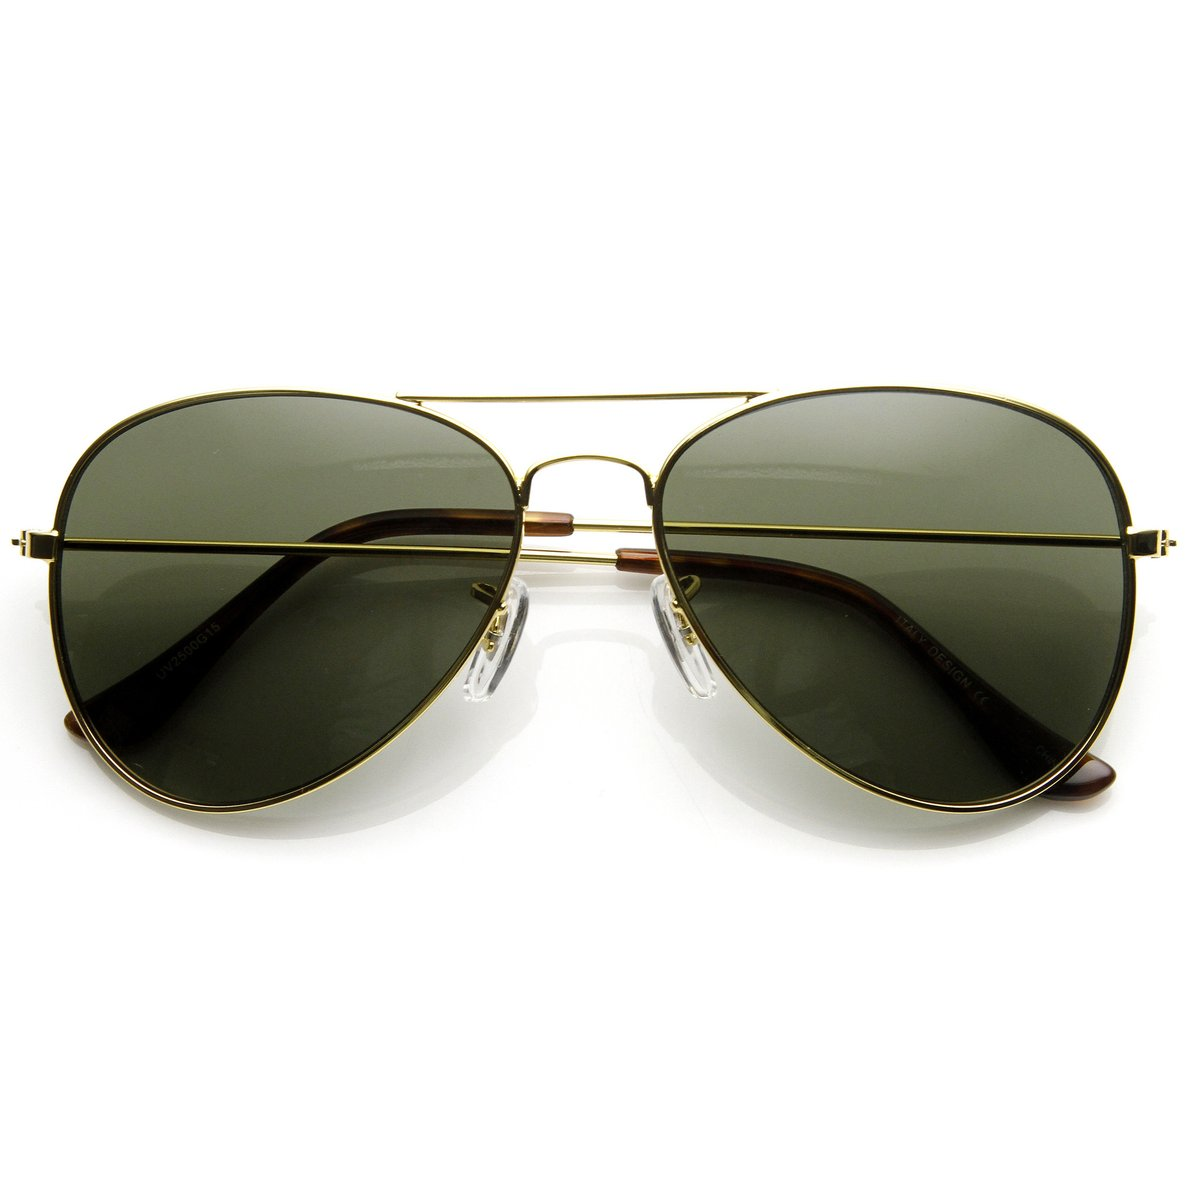 ORIGINAL CLASSIC METAL MILITARY AVIATOR SUNGLASSES 58MM (USG-ZERO16)